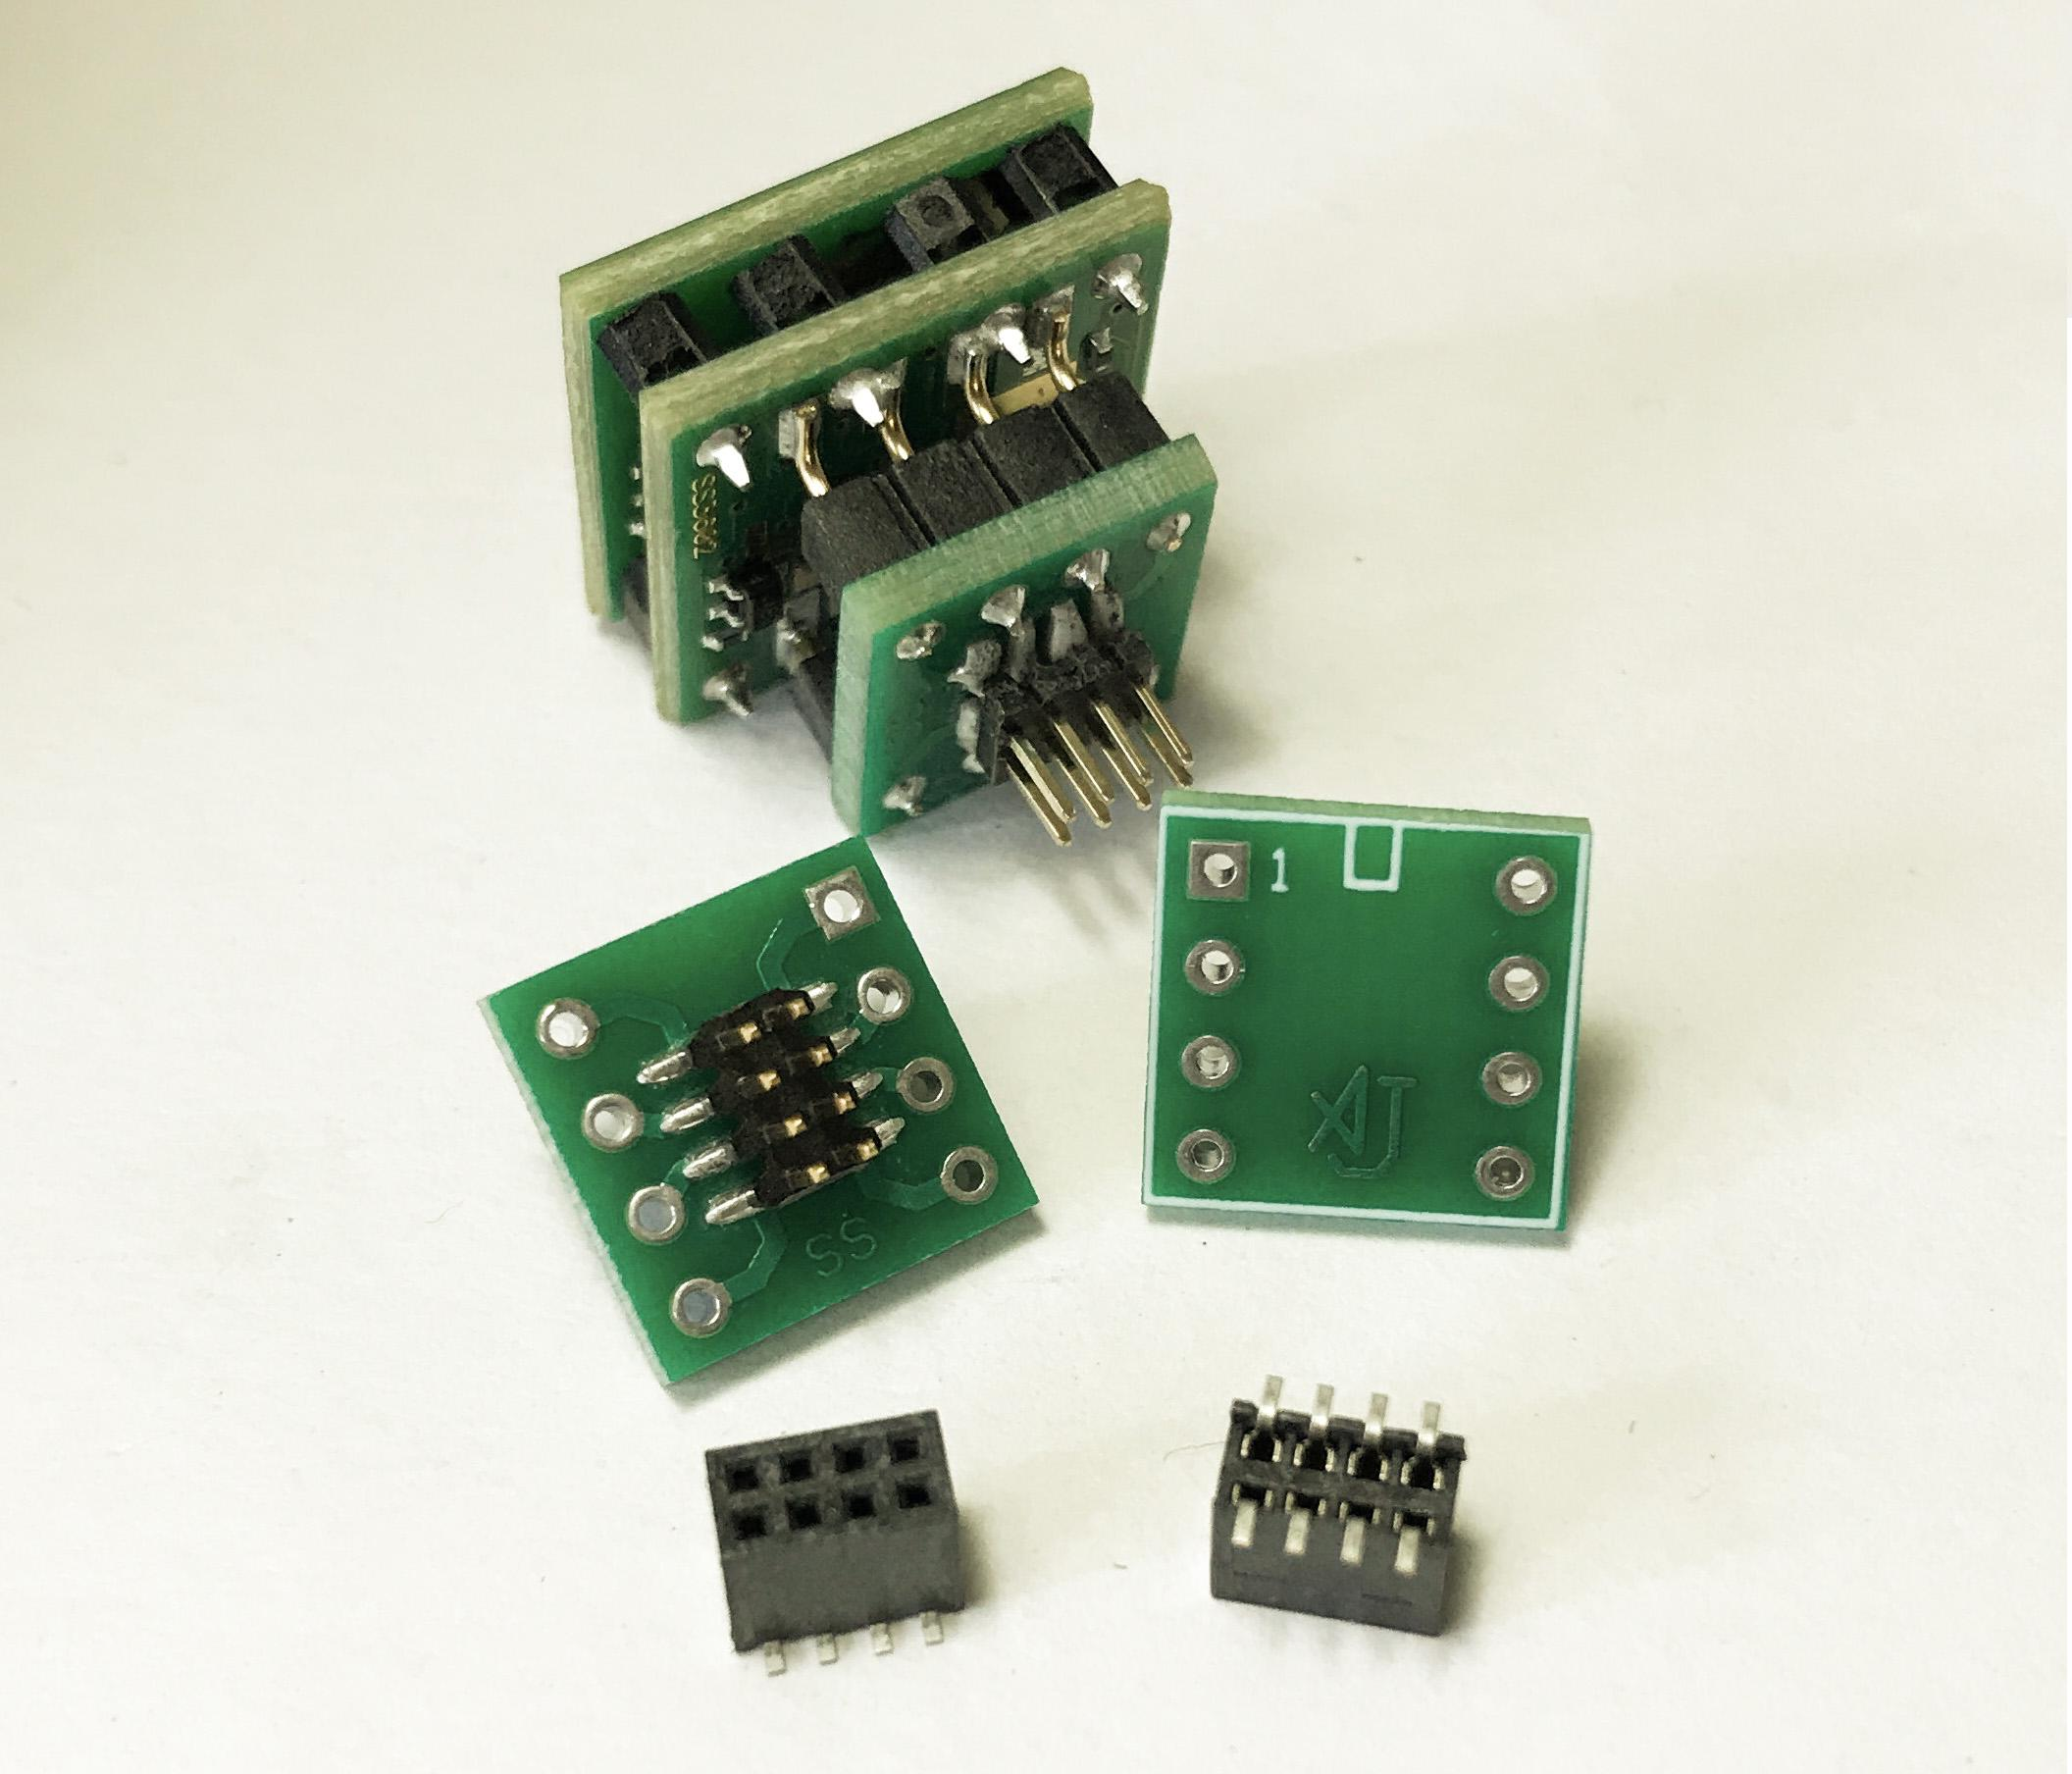 SOIC to DIP adapter